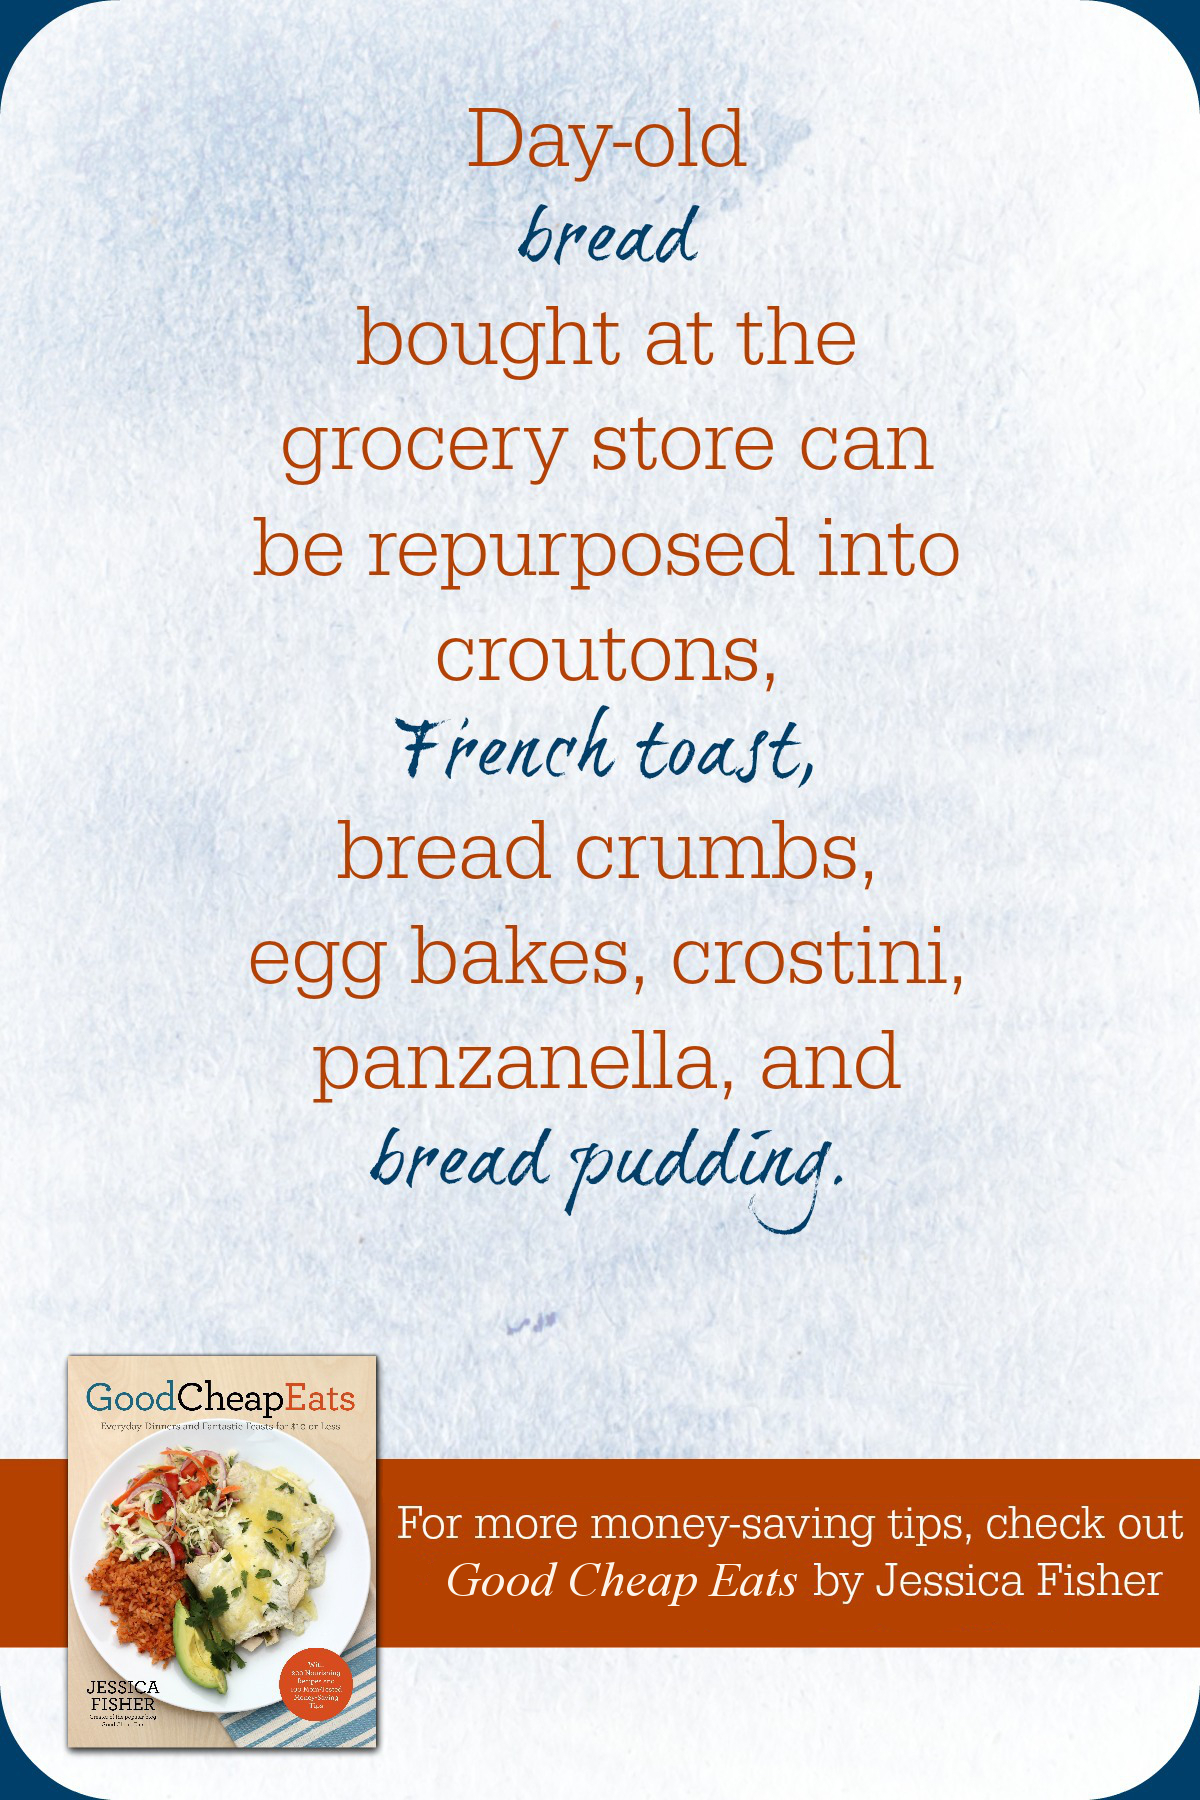 Give Day-Old Bread New Life - Snap up that day-old bread at the store and give it new life in recipes!